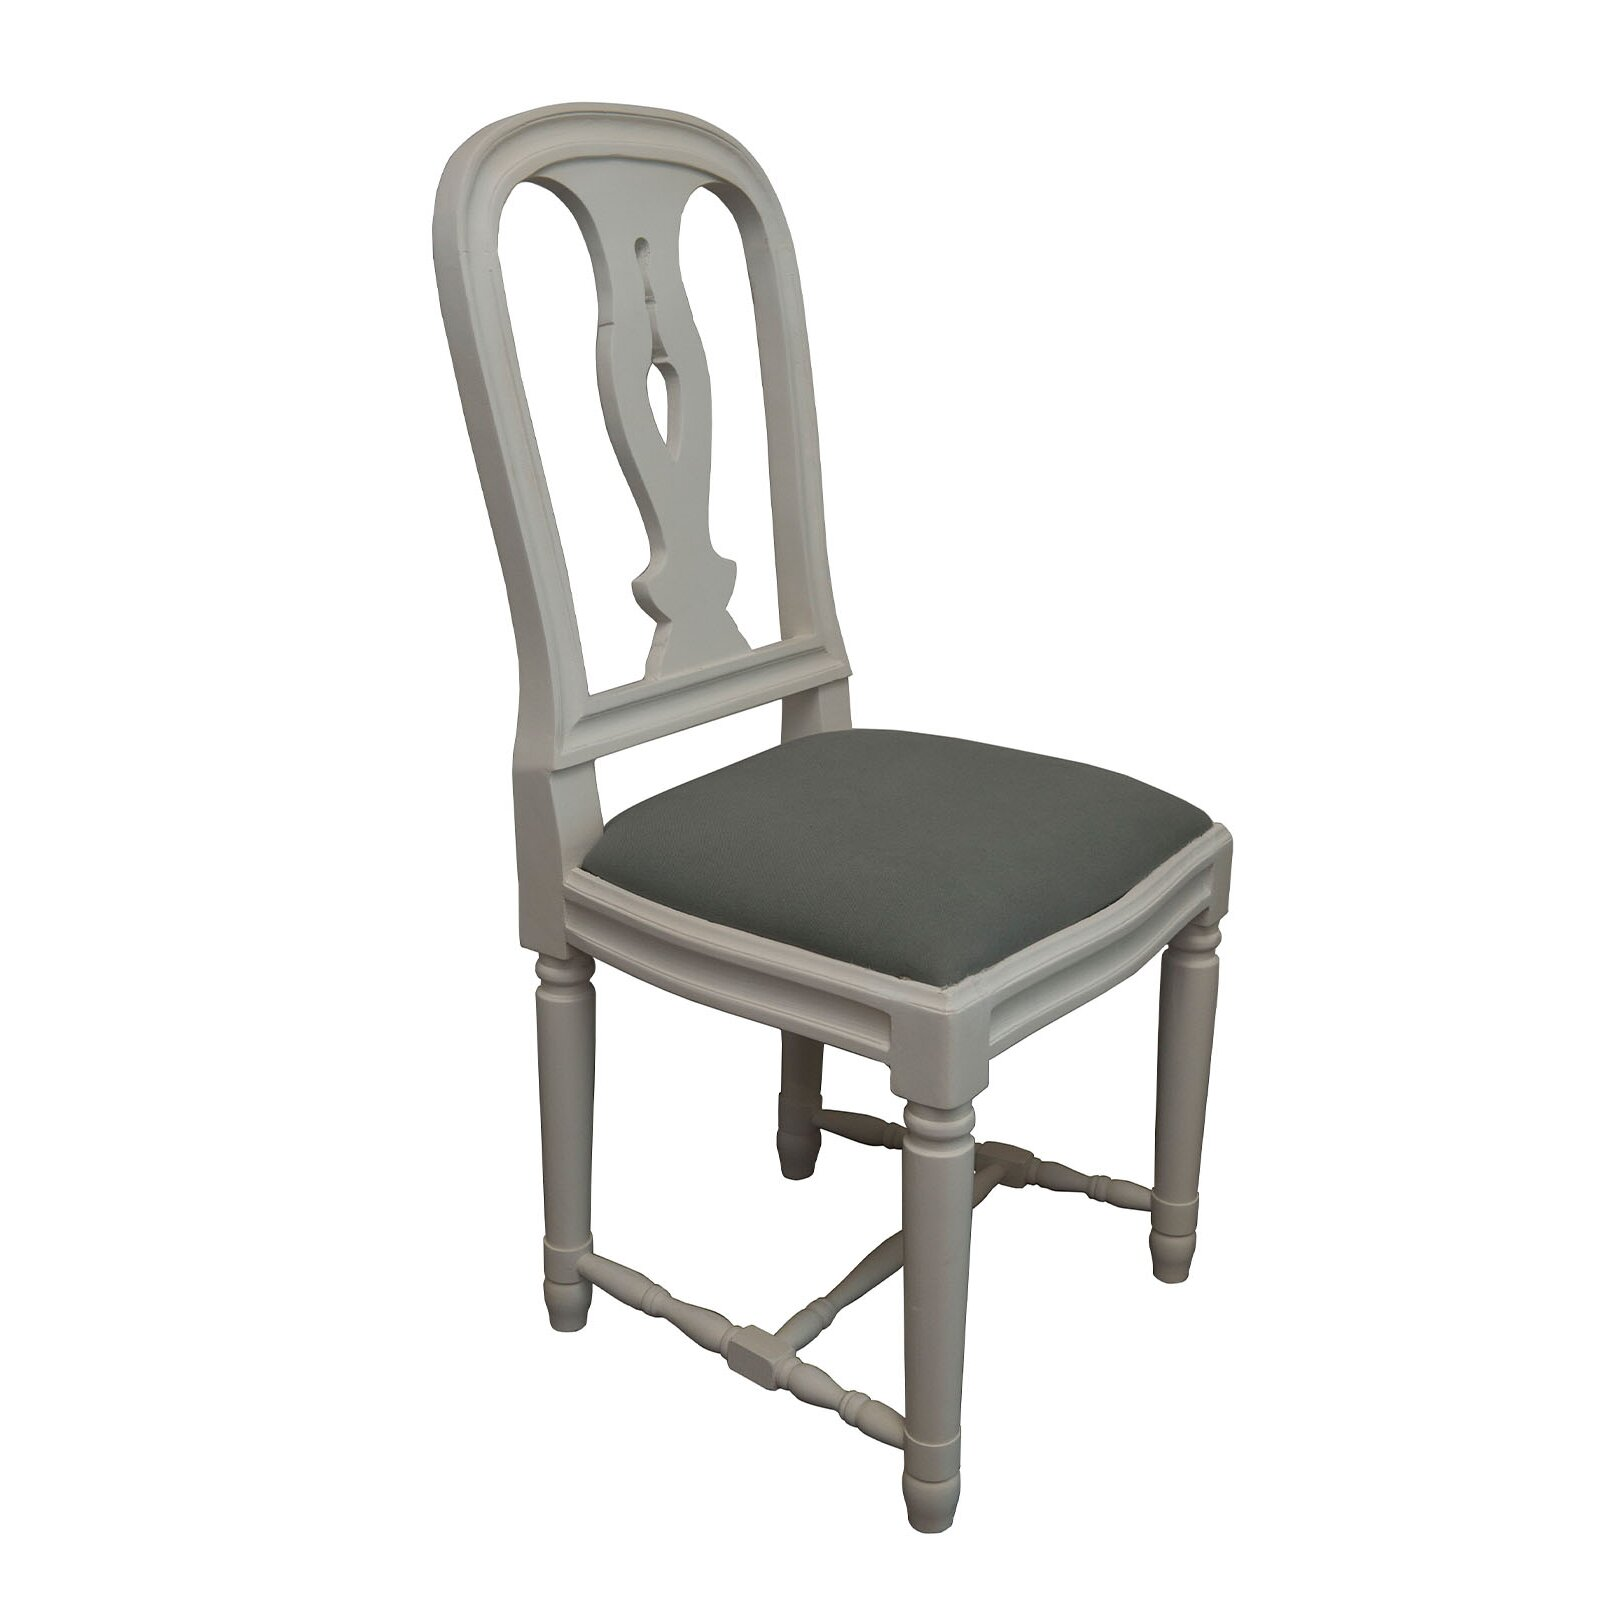 Laurel foundry modern farmhouse andelle side chair wayfair for Modern farmhouse dining chairs